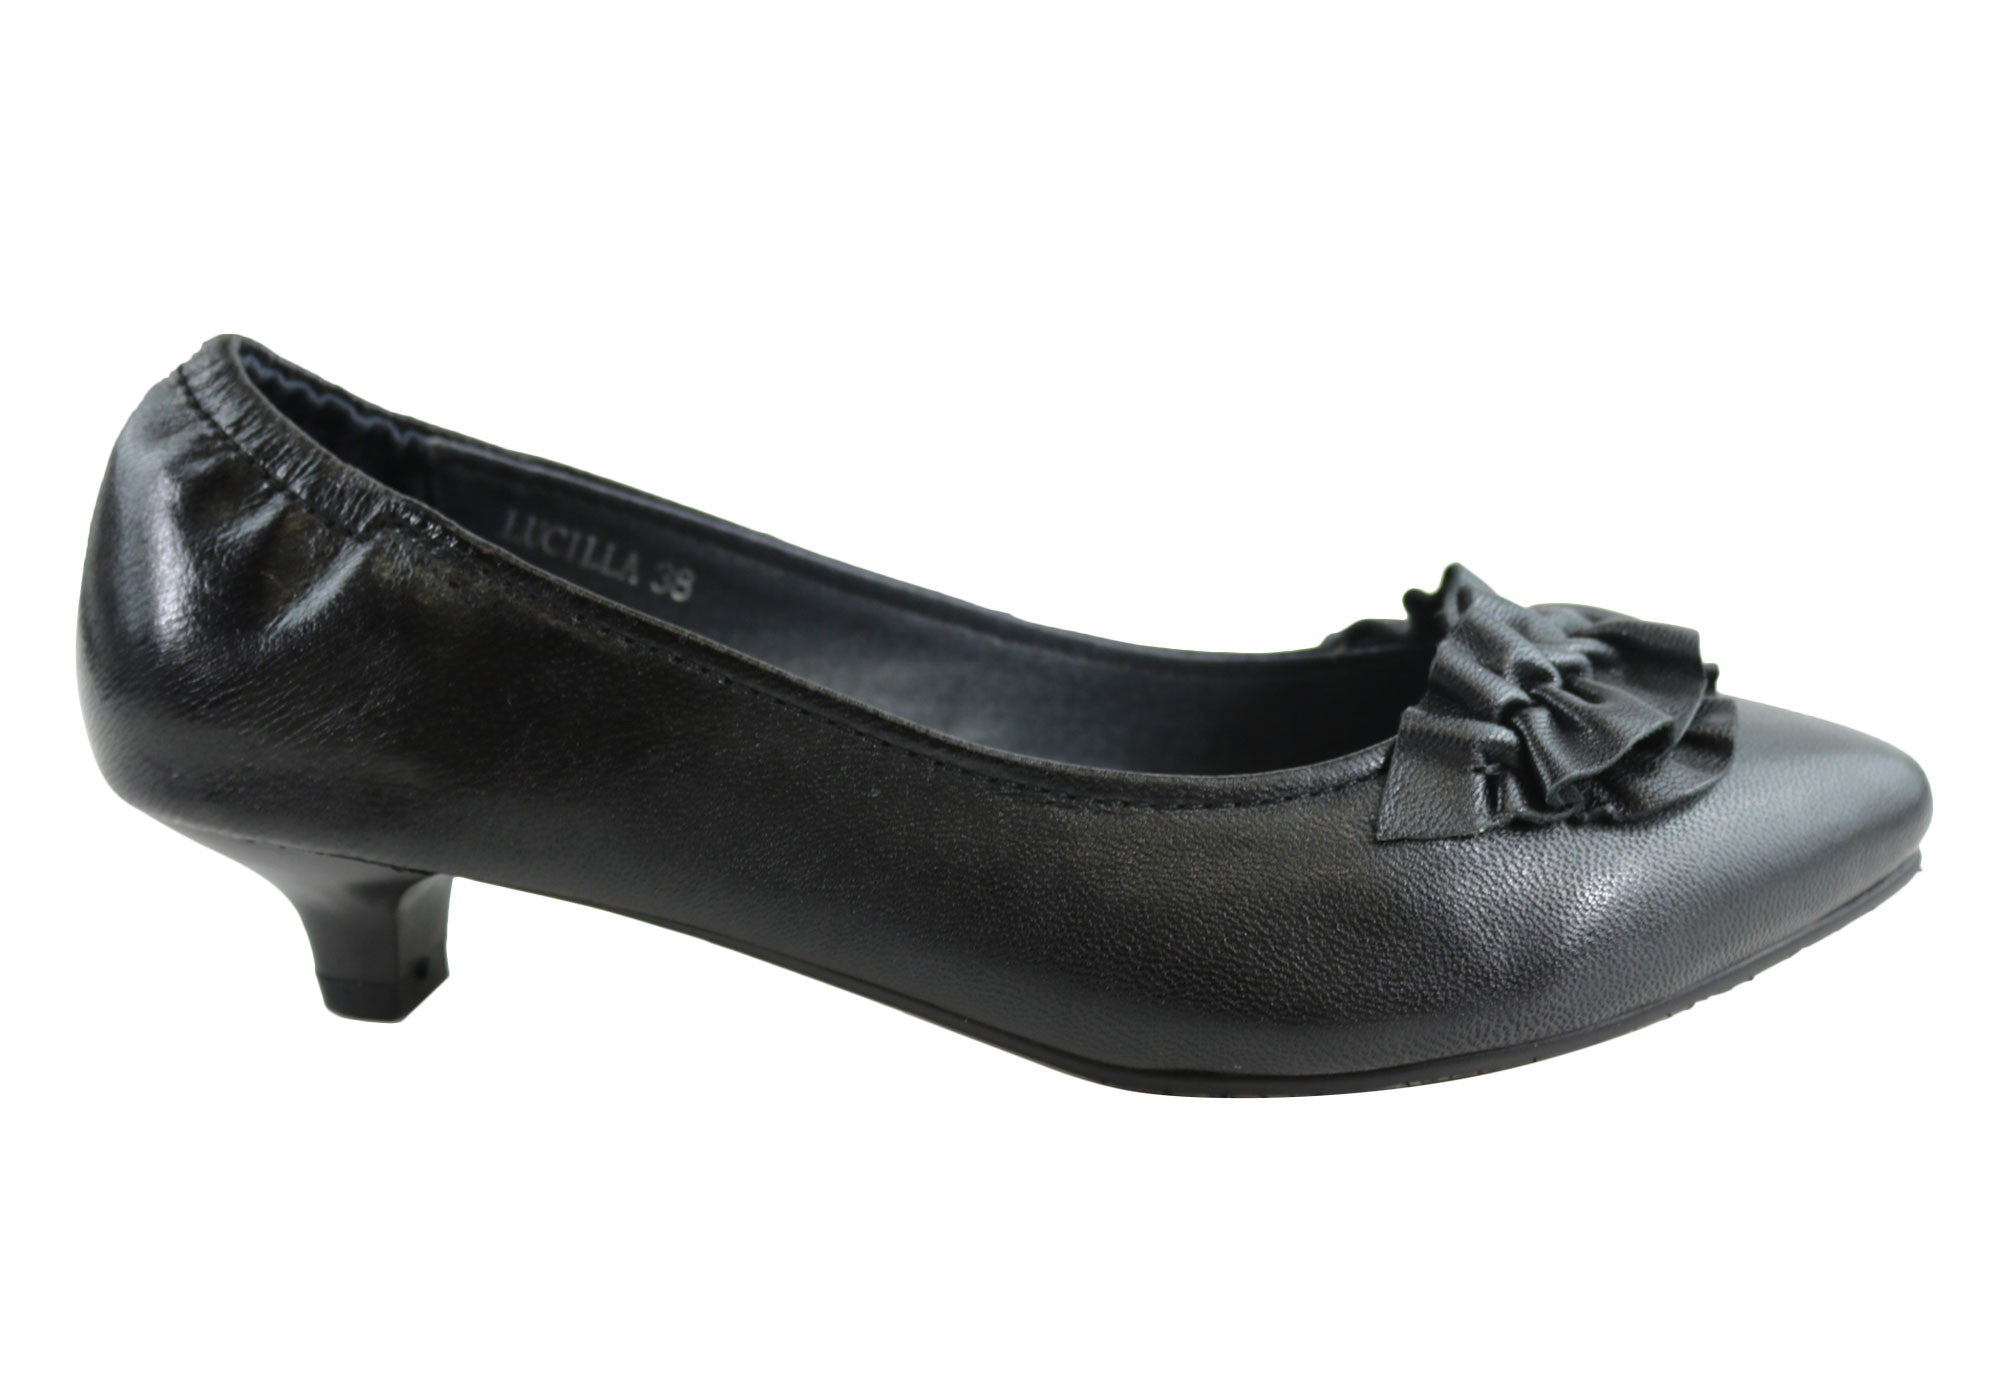 NEW-BIRTHMARK-LUCILLA-WOMENS-LEATHER-COMFORTABLE-LOW-HEEL-SHOES